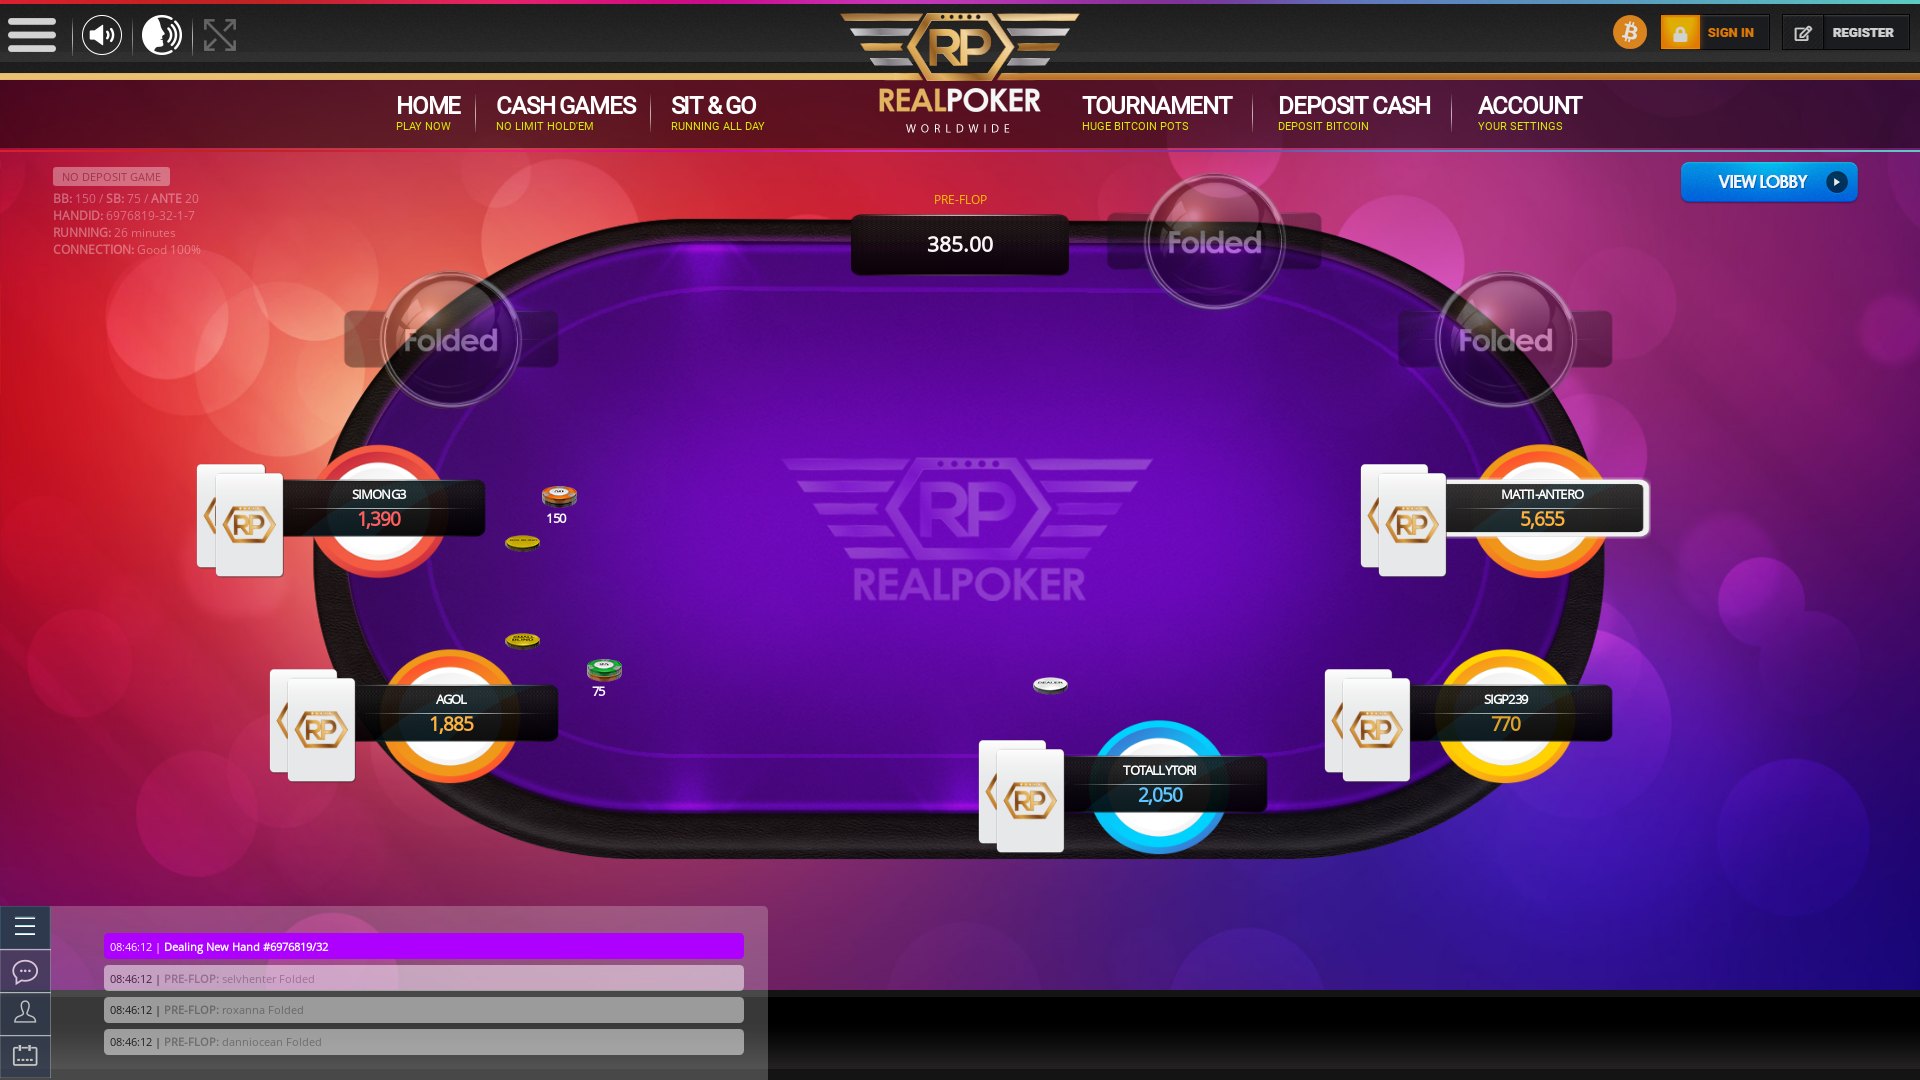 Vienna online poker game on a 10 player table in the 26th minute of the match